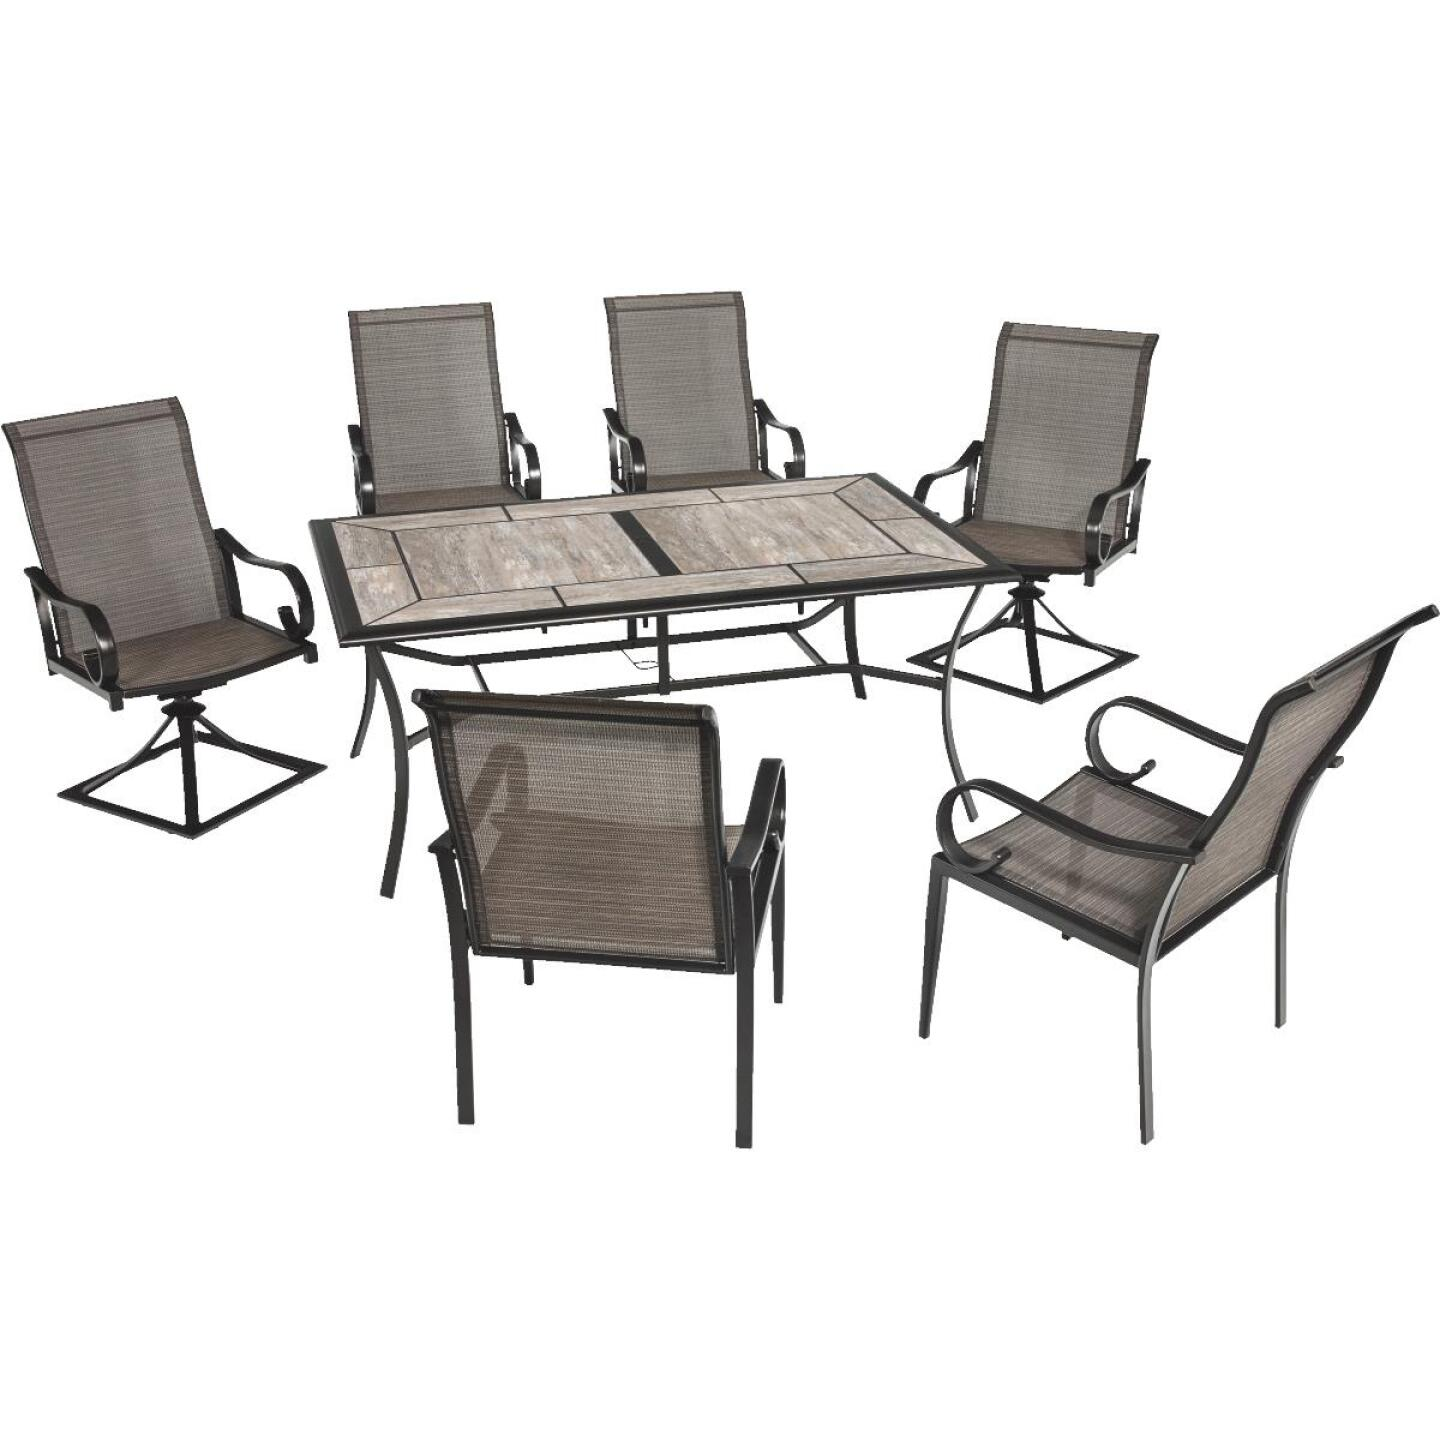 Outdoor Expressions Berkshire 7-Piece Dining Set Image 241